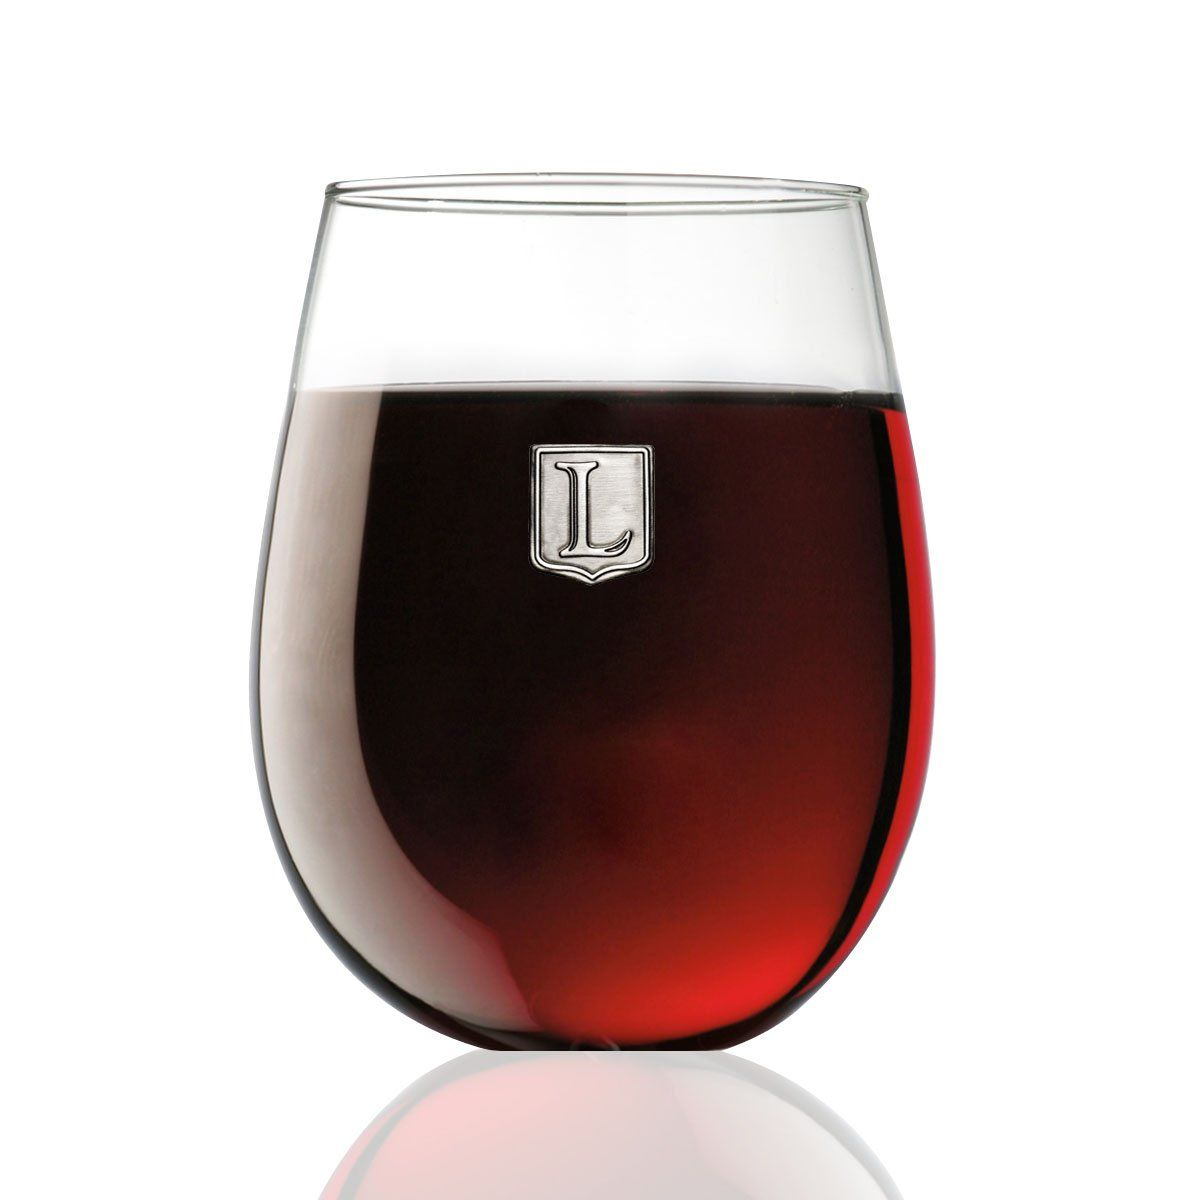 Fine Occasion Personalized Stemless Wine Glass With Letter Crest L 15 Oz Click Image For More Details This Wine Stoppers Wine Chillers Stemless Wine Glass